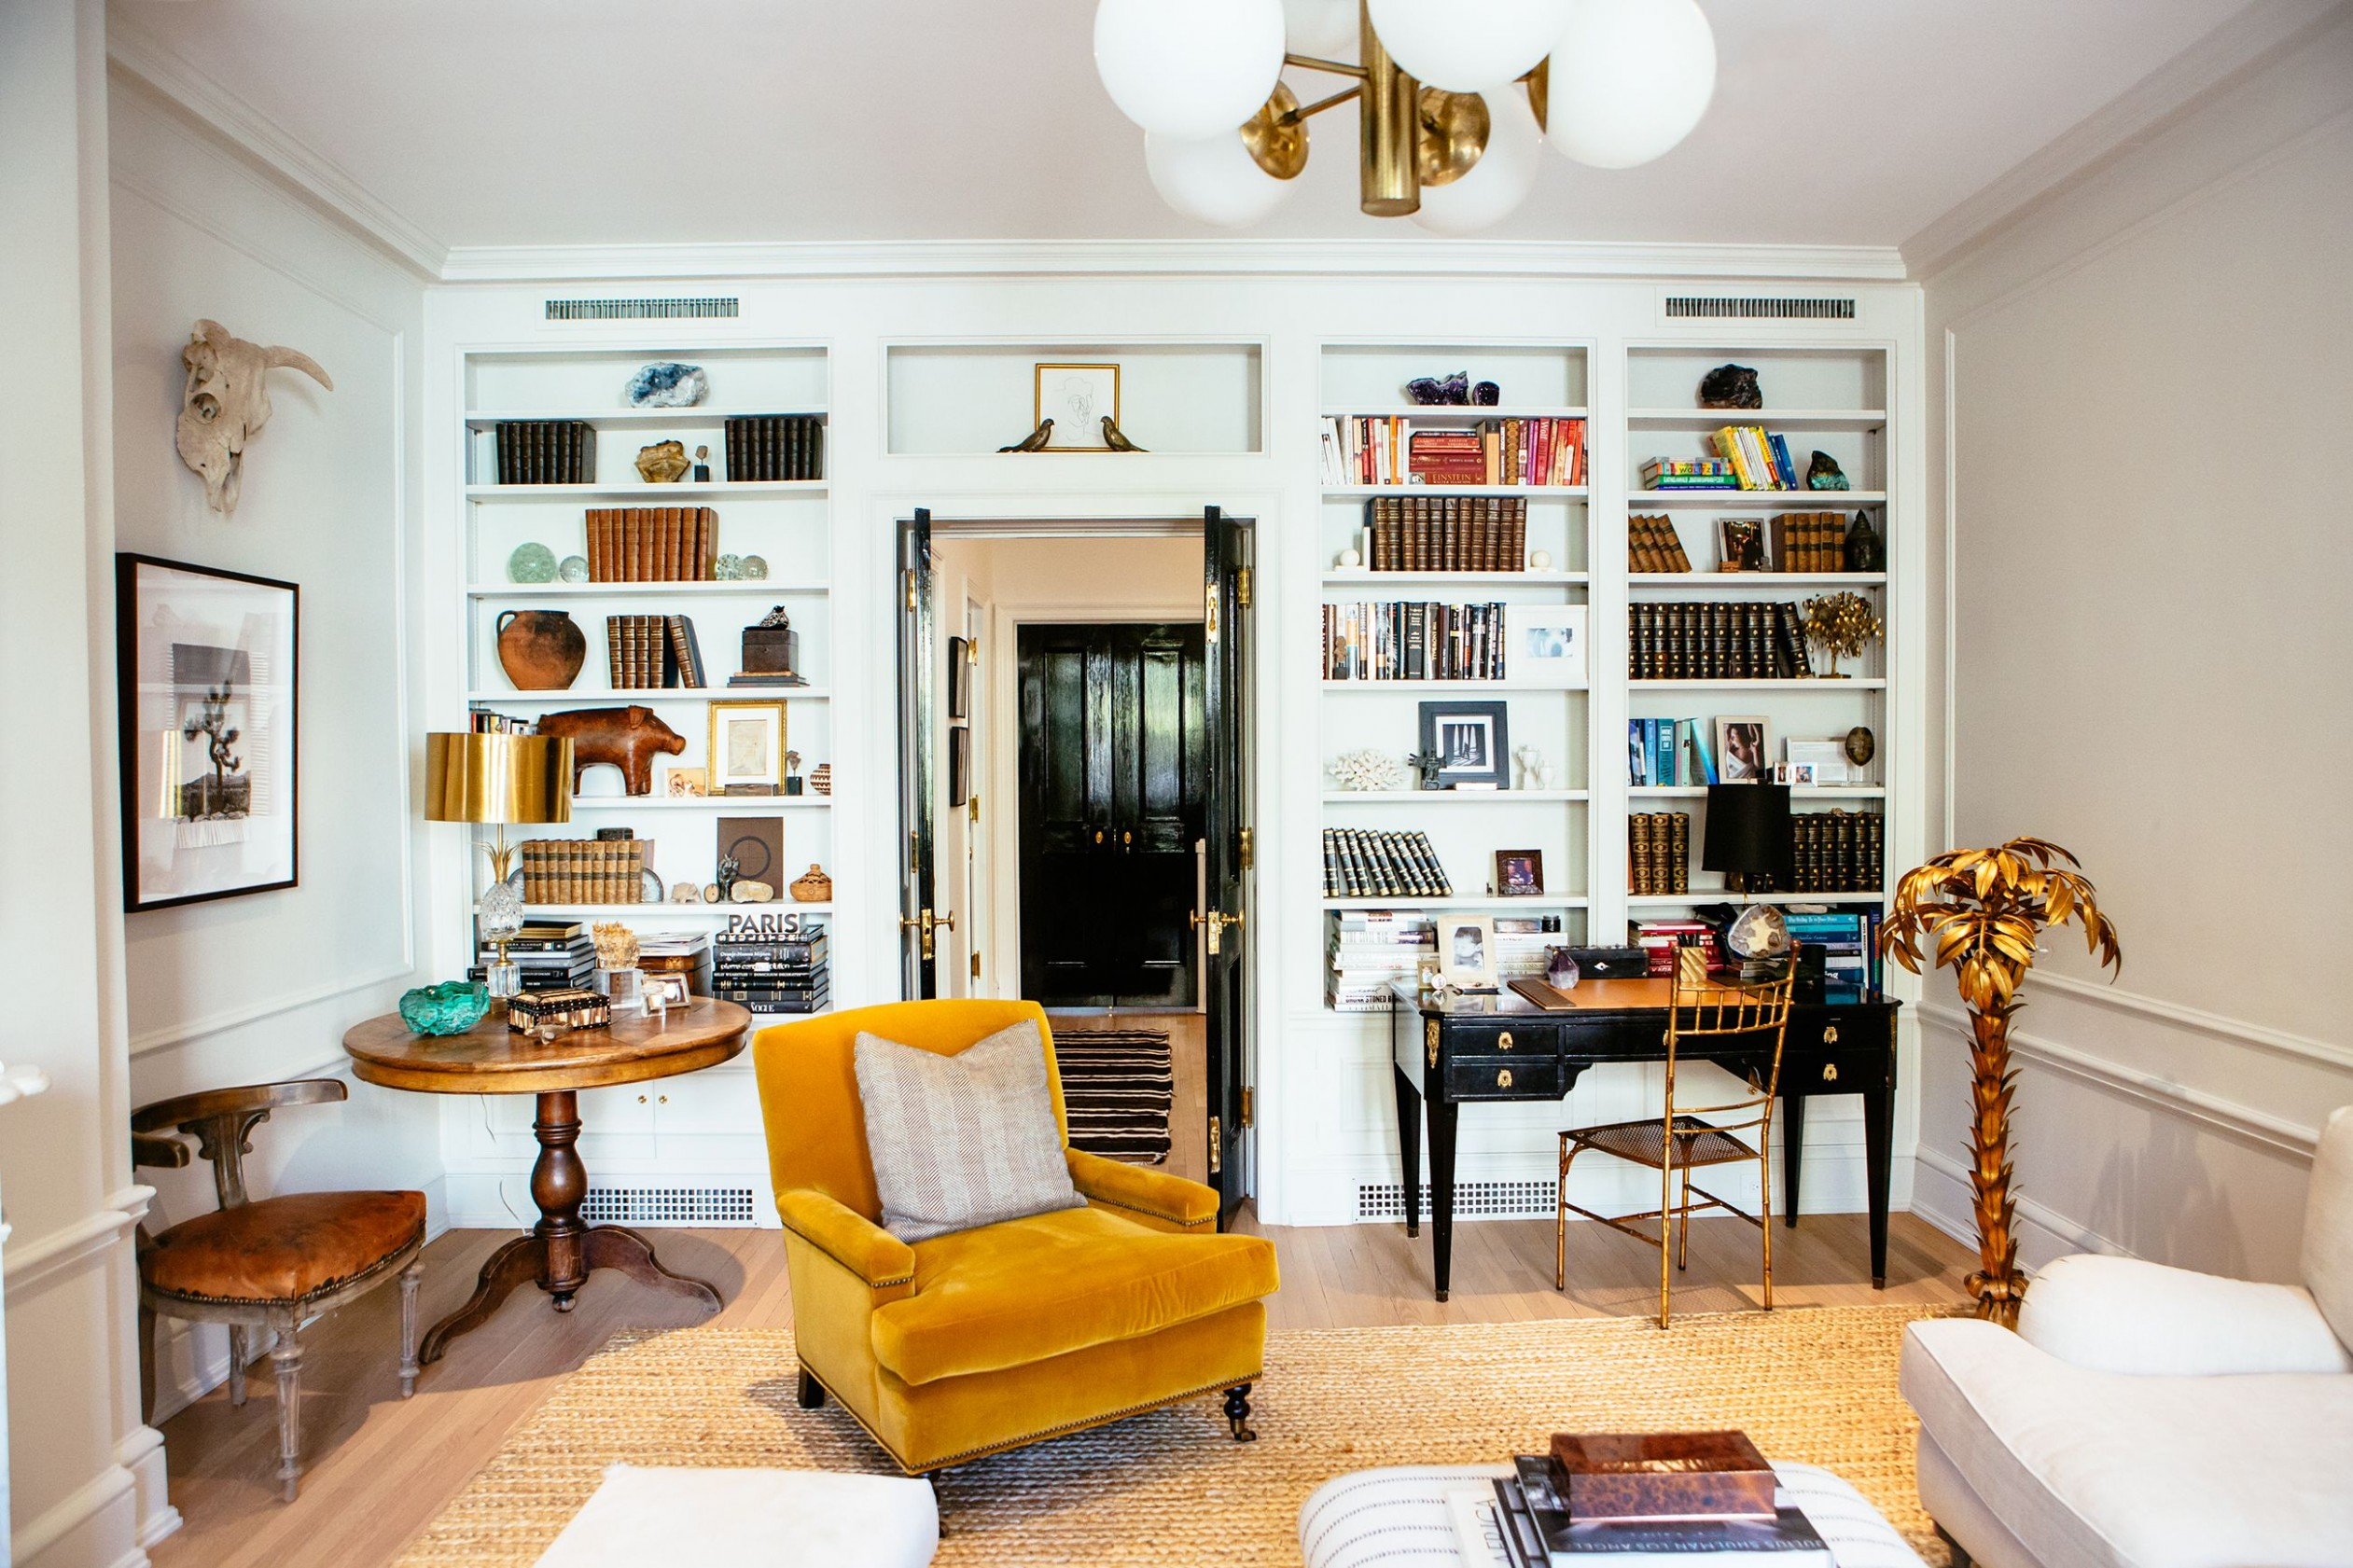 The Design Trends That Are IN and OUT in 11 - What Decorating  - Apartment Design Trends